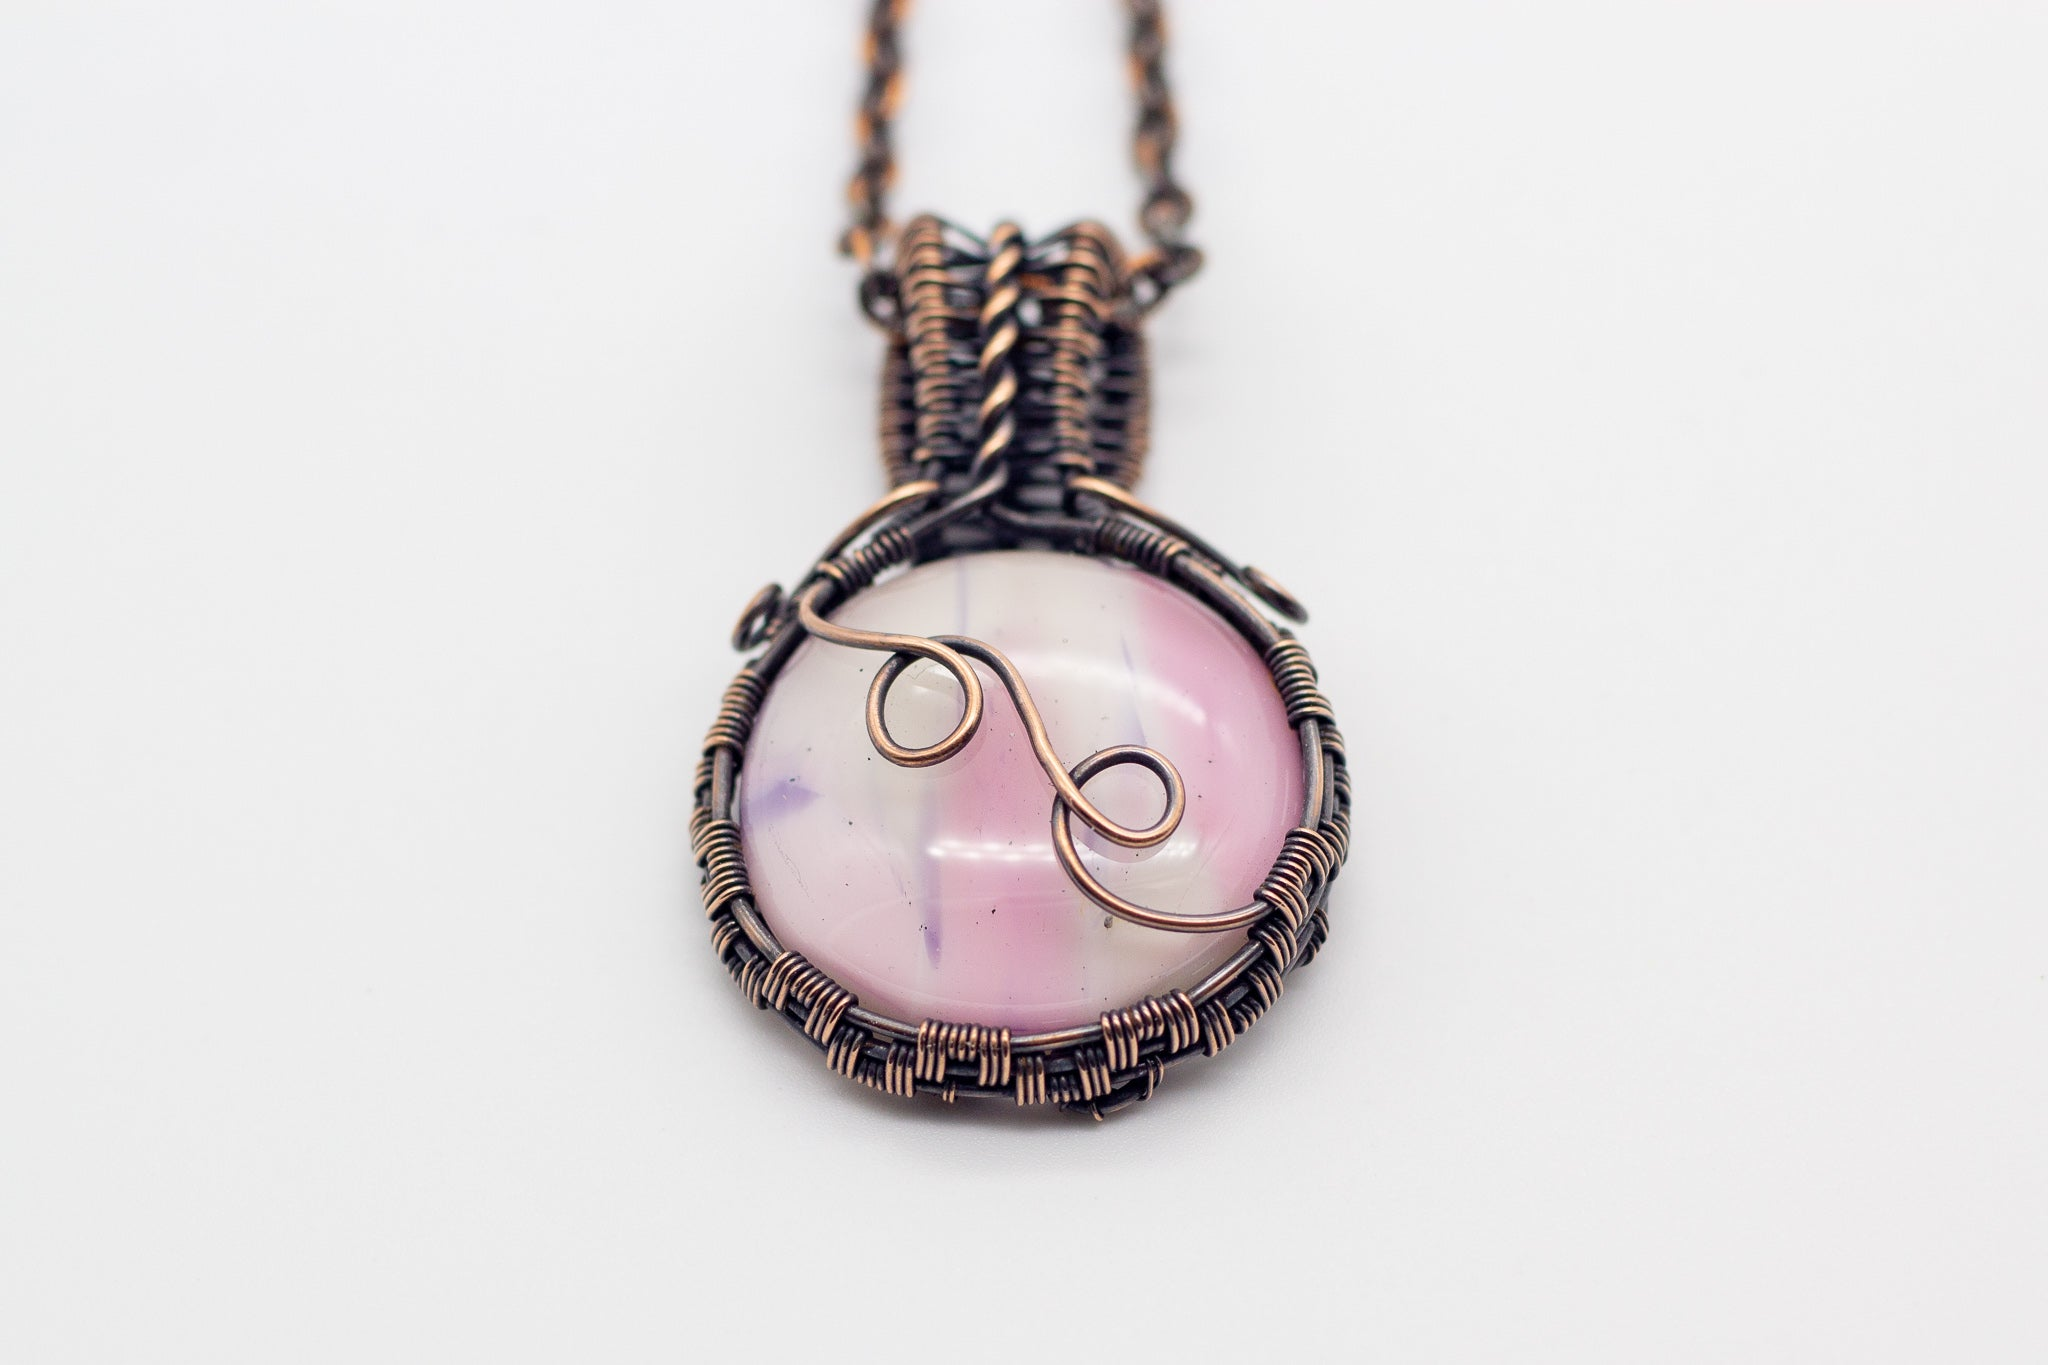 Pink and Cream Fused Glass Pendant with Copper Wire Wrapping